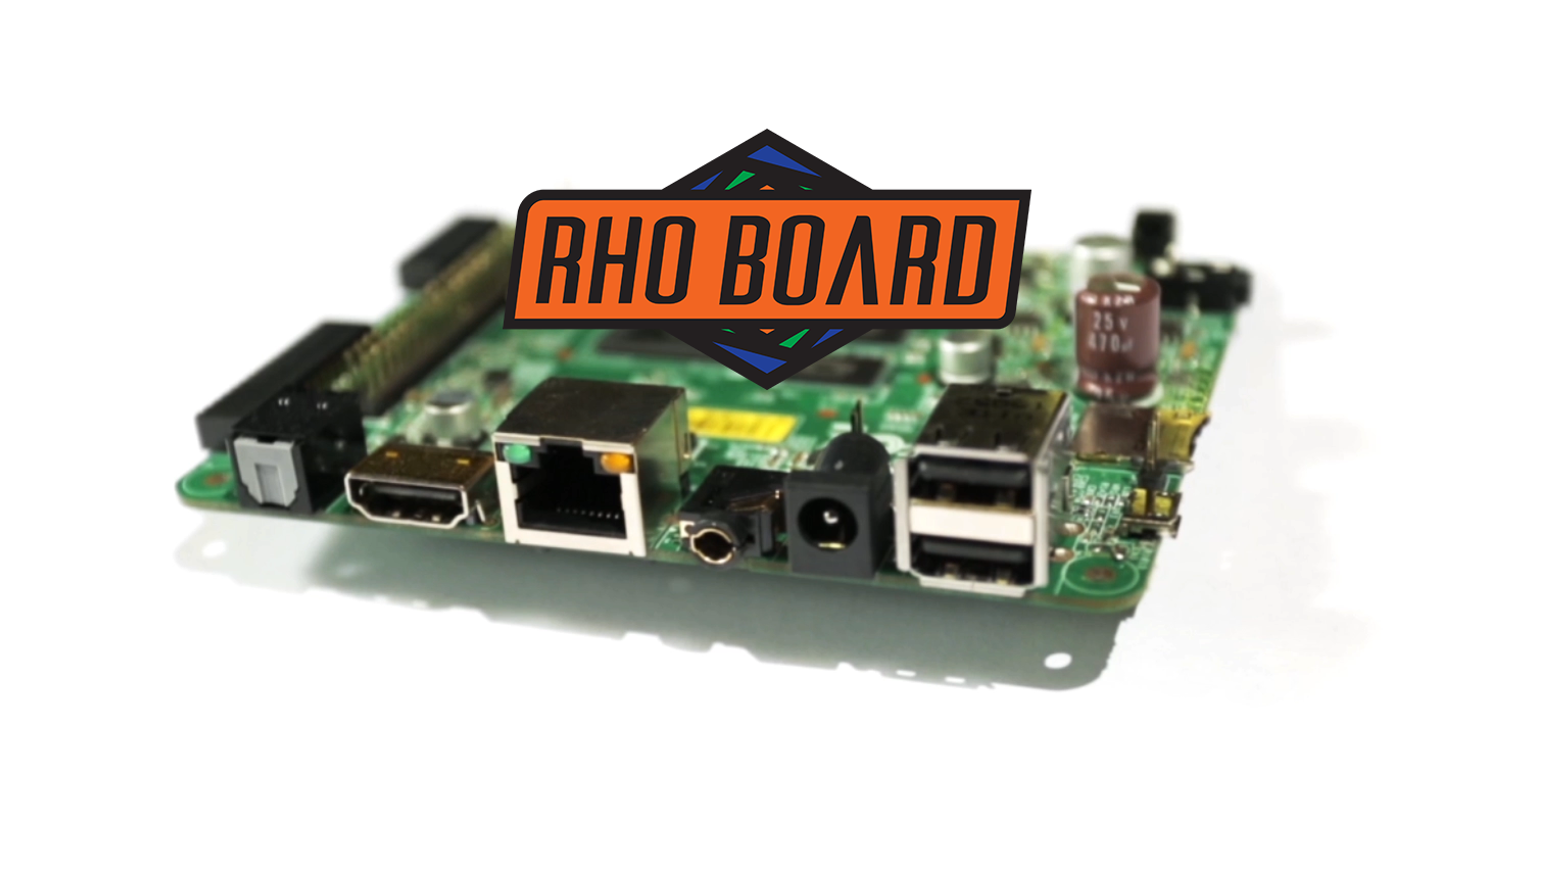 Rho Board by Futarque A/S » Teaser of Next Project — Kickstarter